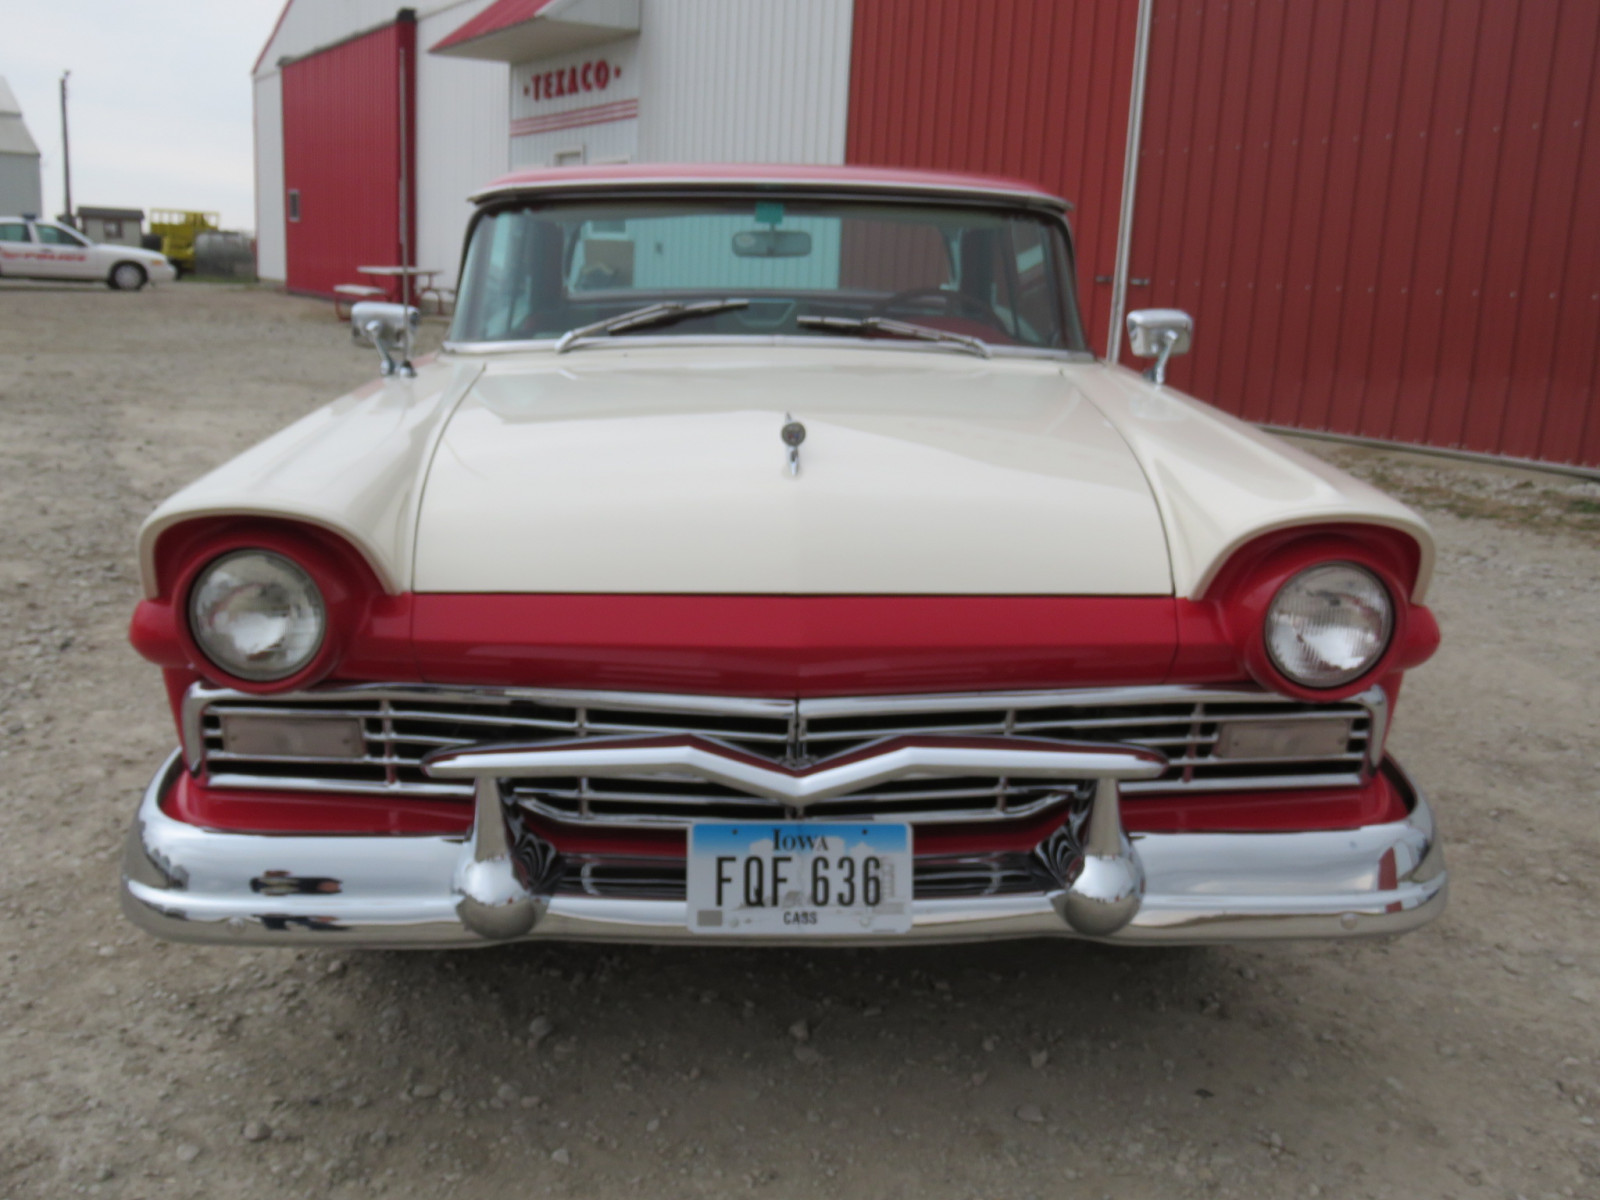 1957 Ford Fairlane 500 Skyliner Retractable hard Top - Image 2